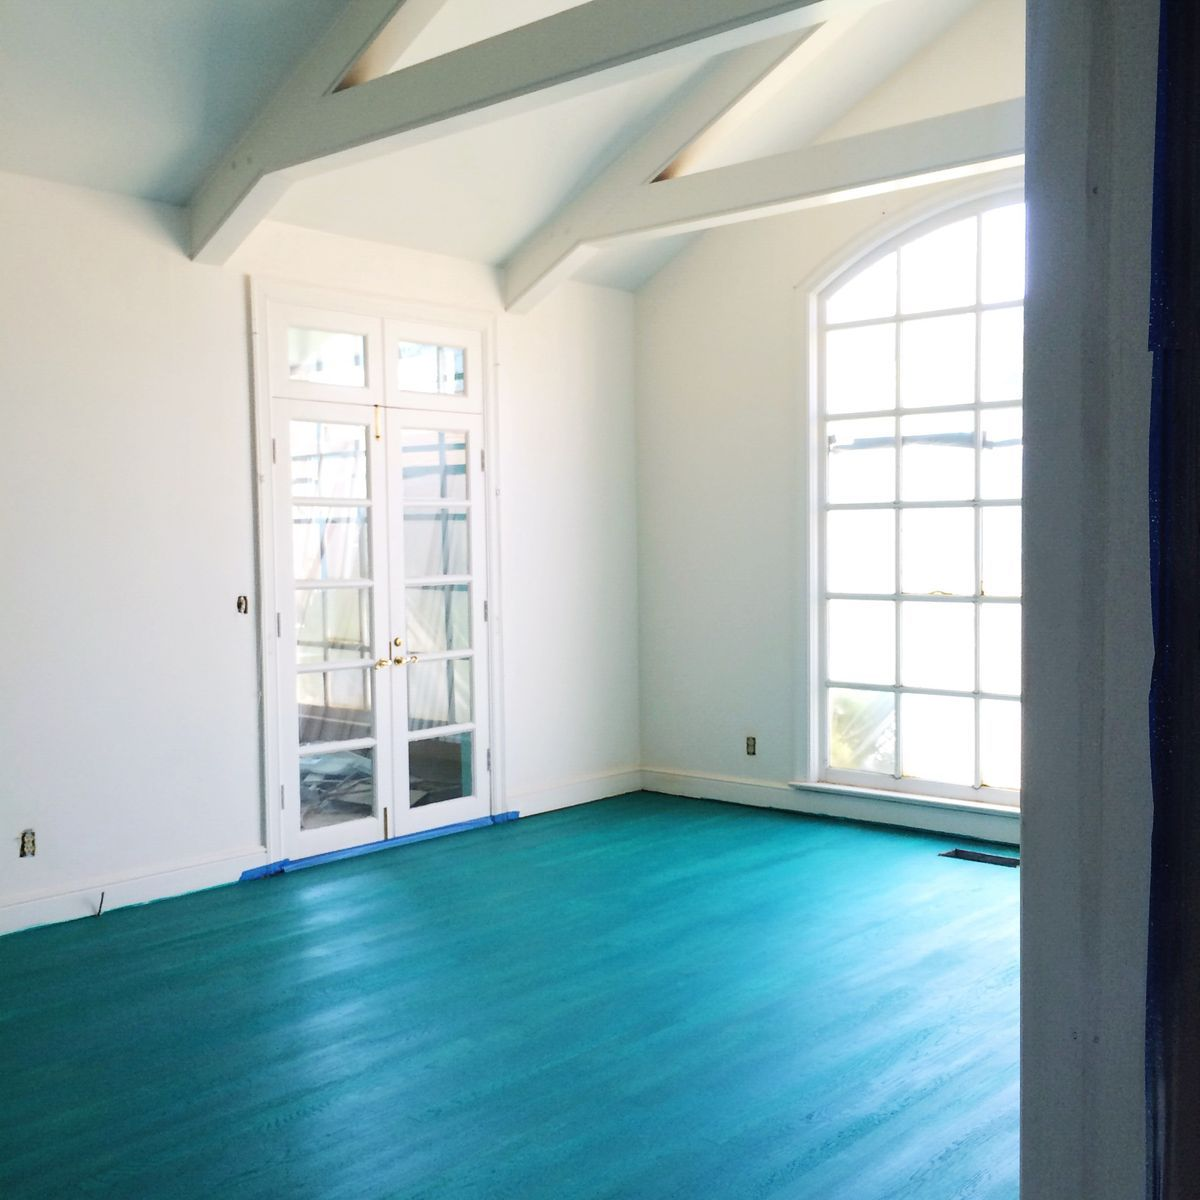 Hey, friends! A couple days ago we moved into our new home, and WOW, it has been a really intense week. Words cannot describe. I'll save the long version of that story for another time and skip to the best part of my week...these floors! We chose intense turquoise color washed floors for our formal living room, which is also the first room you see when you walk into the...